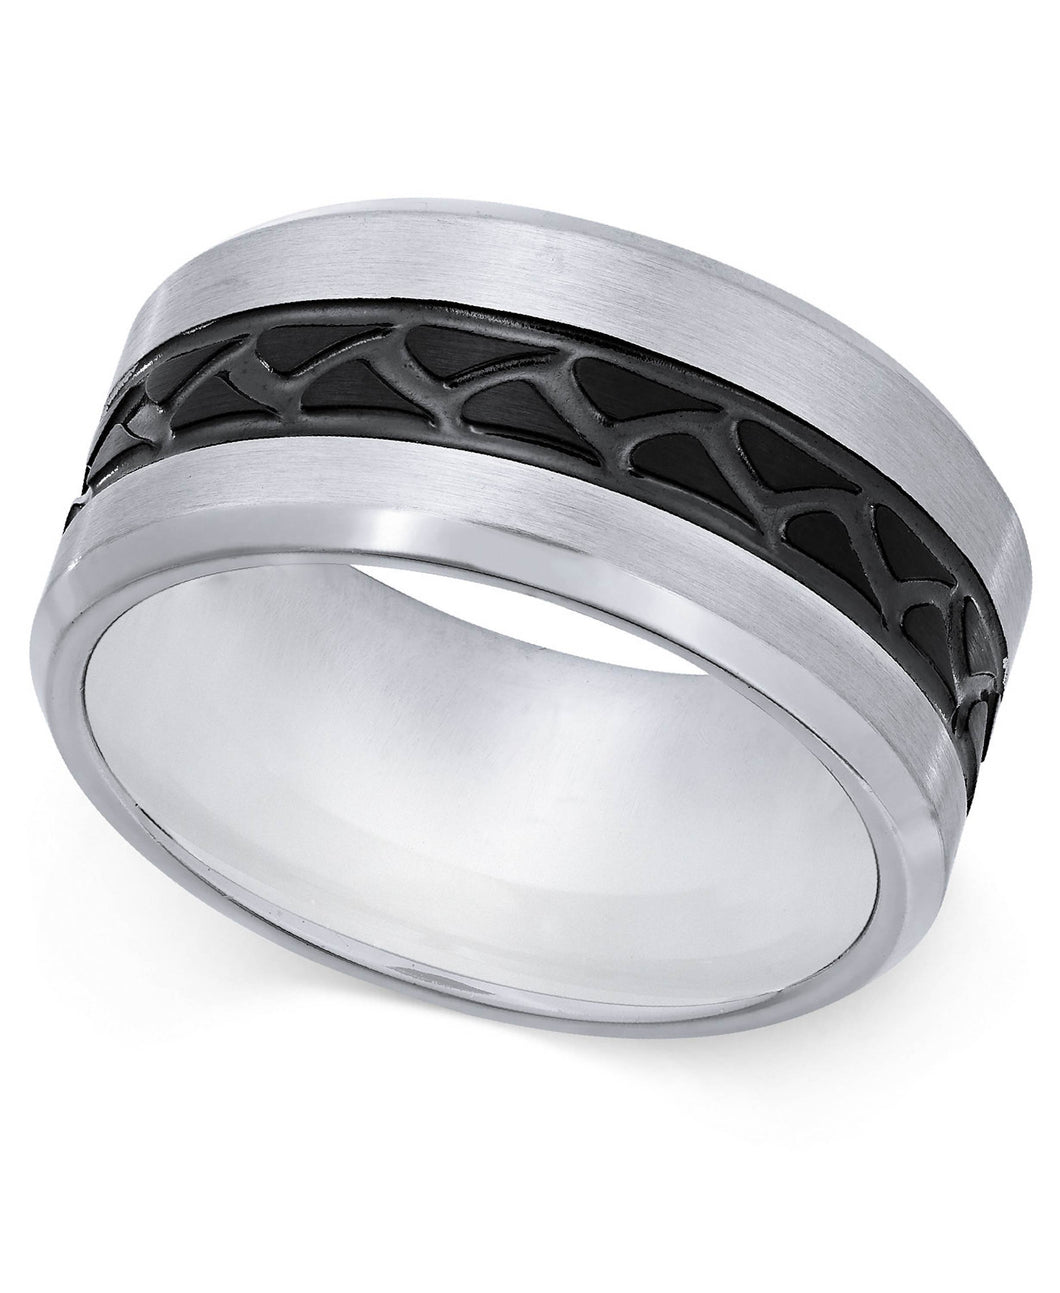 Men's Stainless Steel Tire Tread Ring